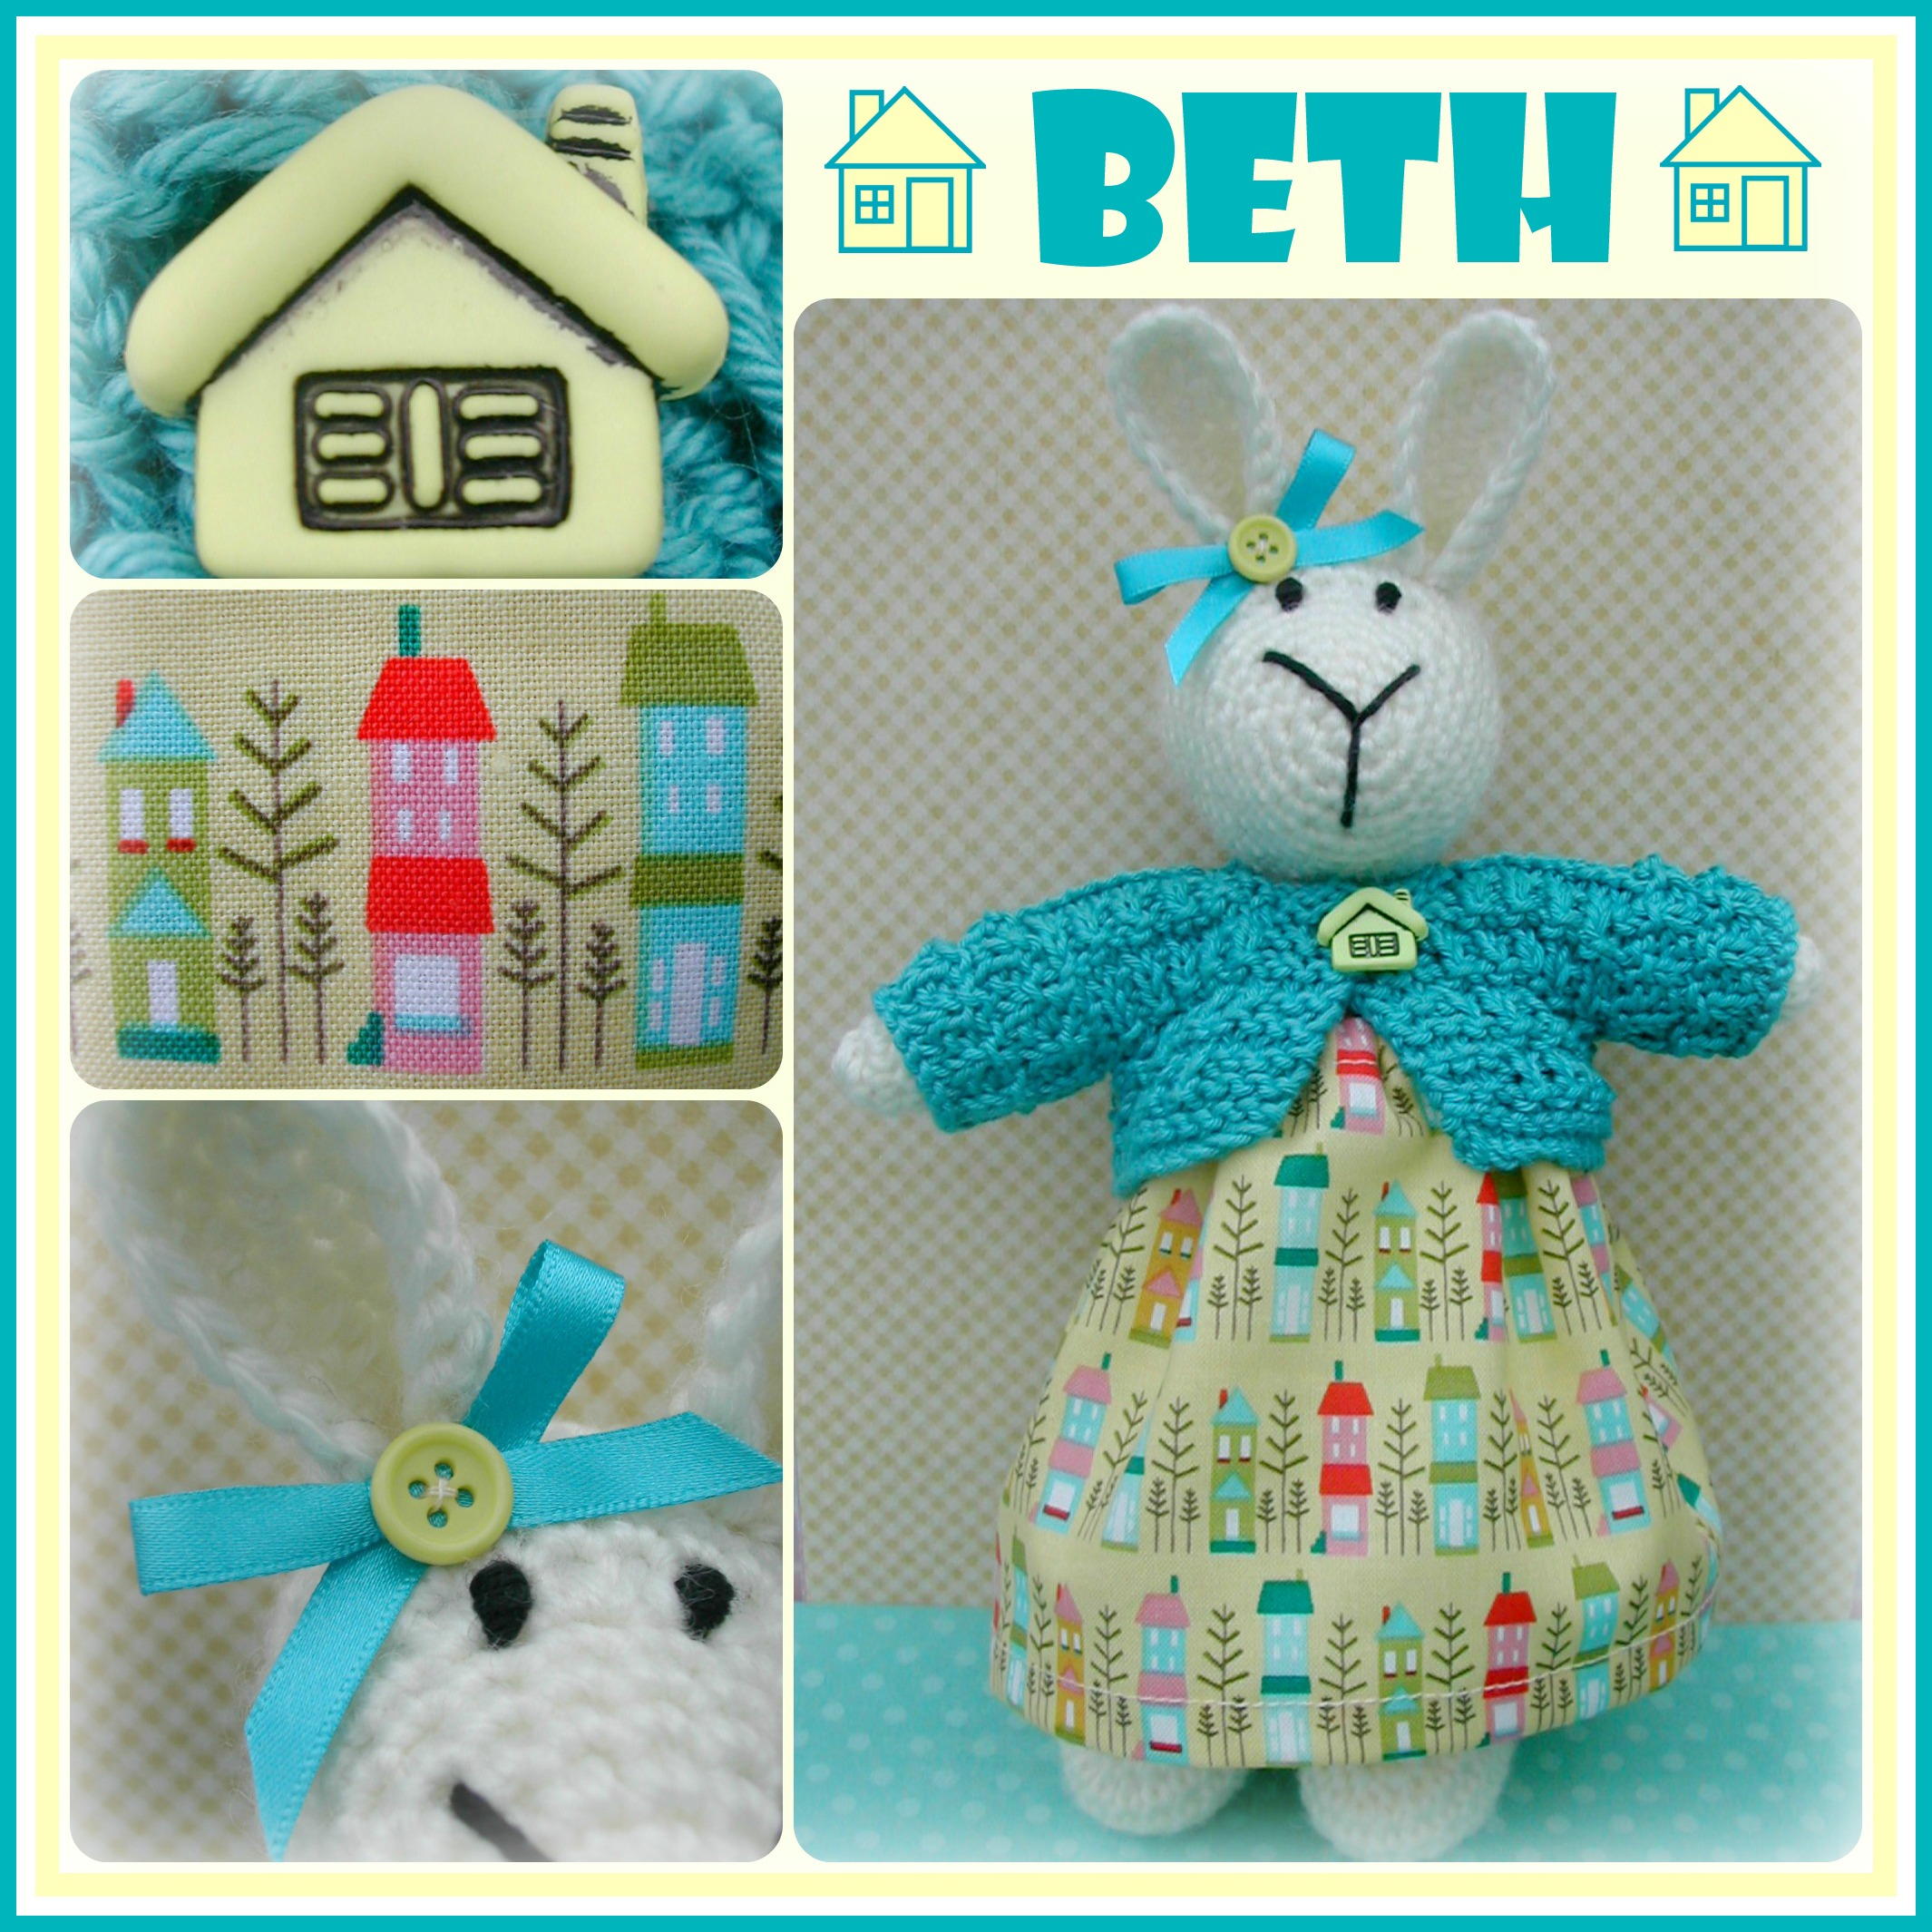 Beth Collage